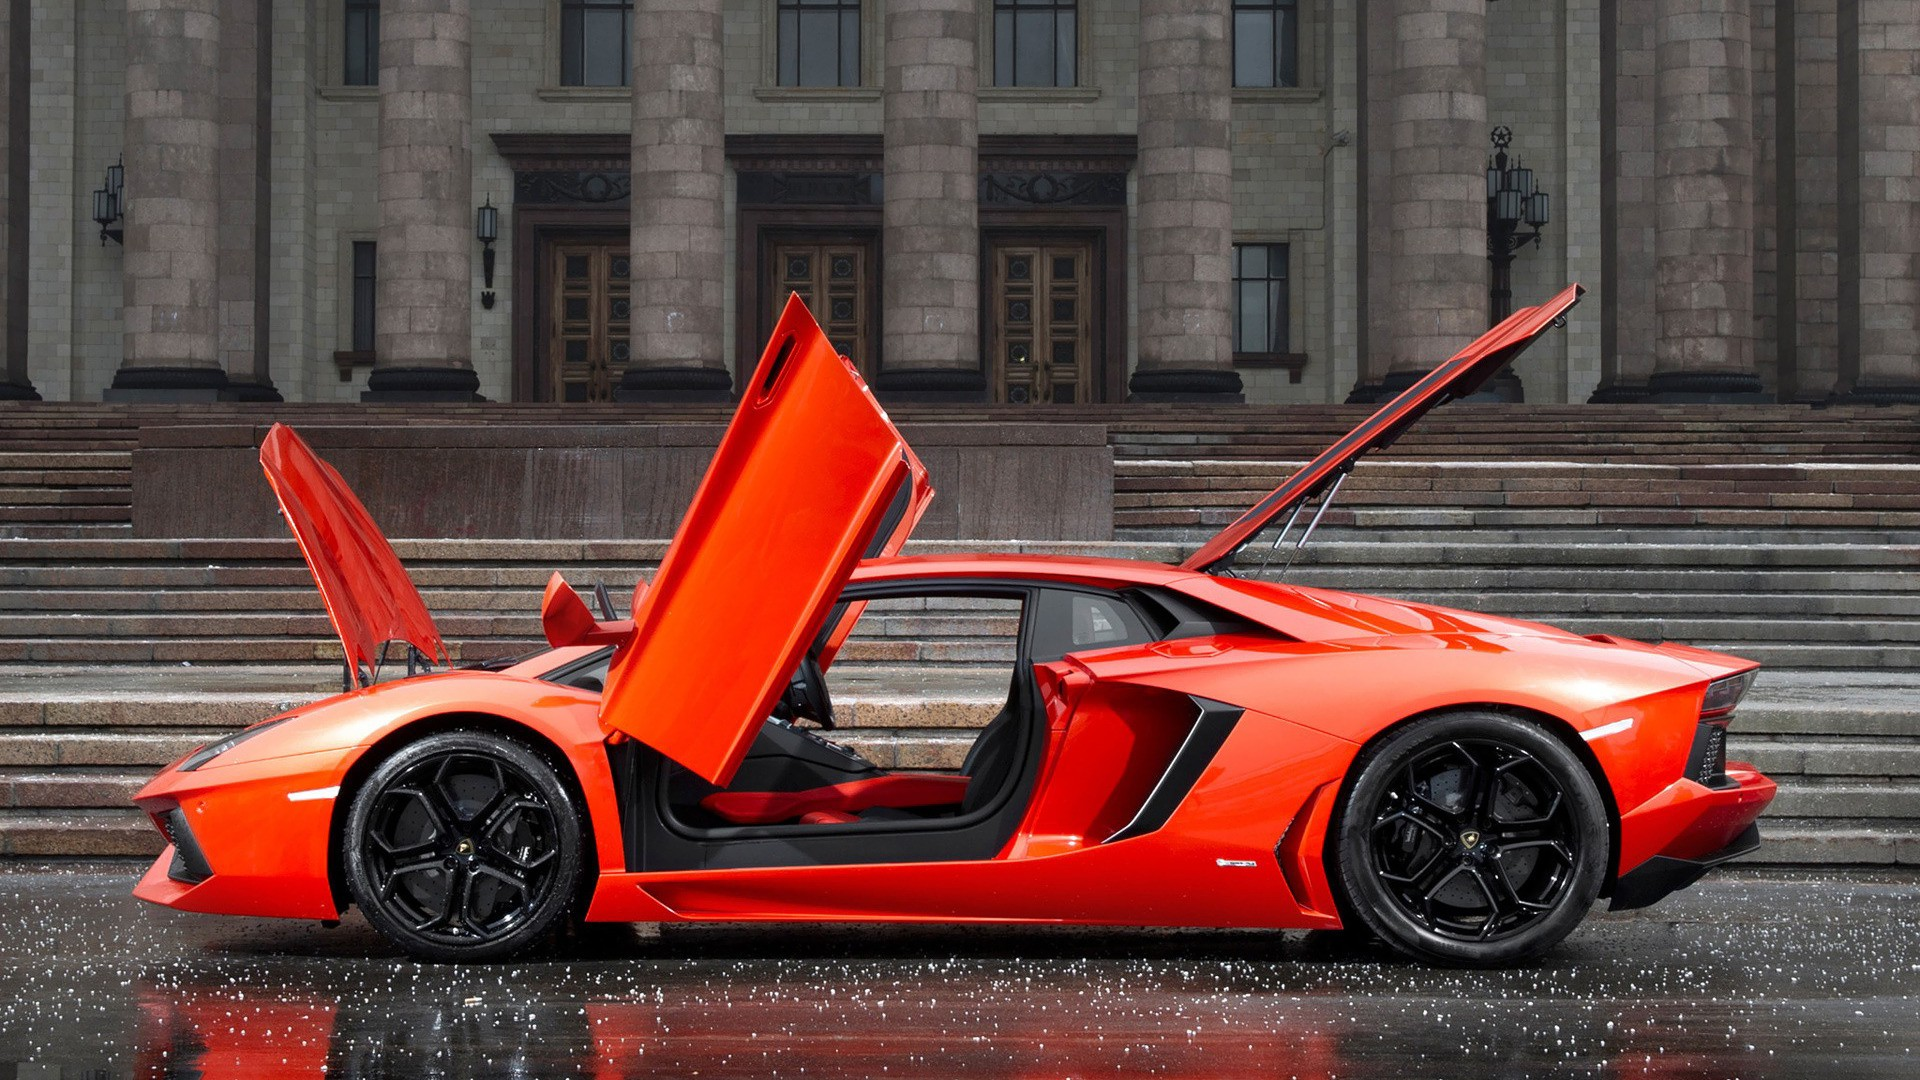 4k Wallpapers Exotic Super Sports Cars Car Lamborghini Orange Lamborghini Aventador Rain